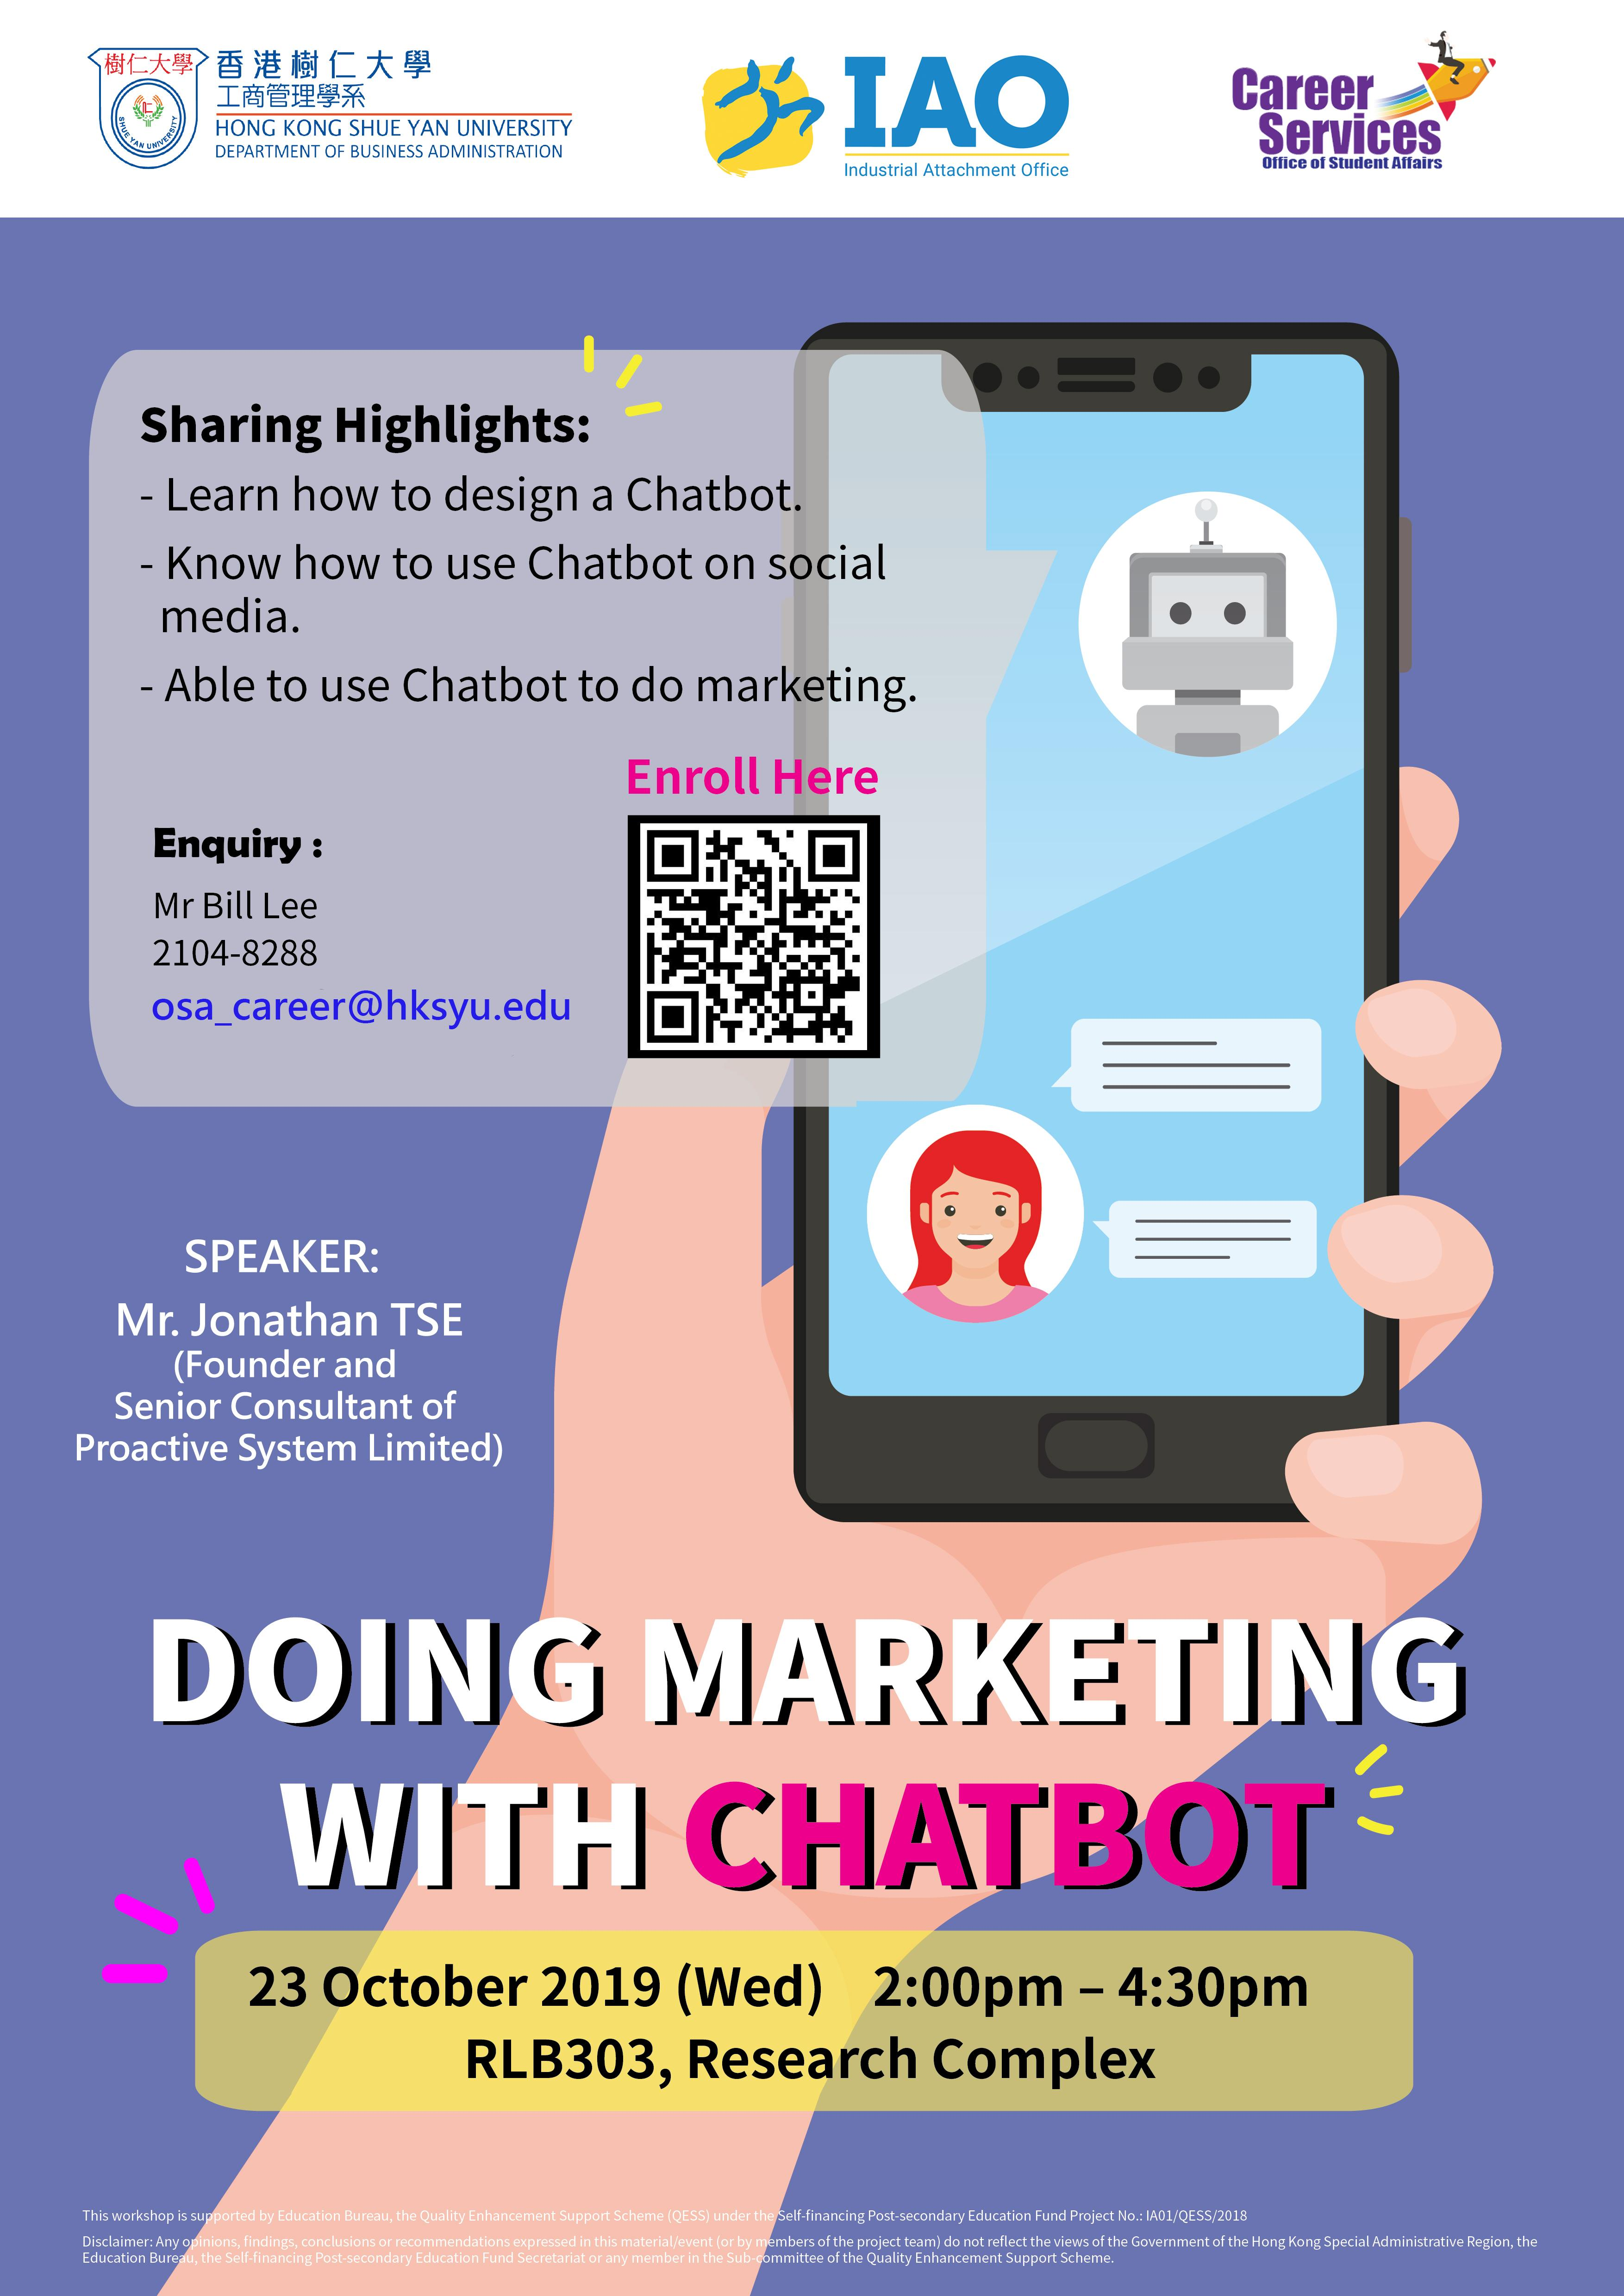 Doing Marketing With Chatbot